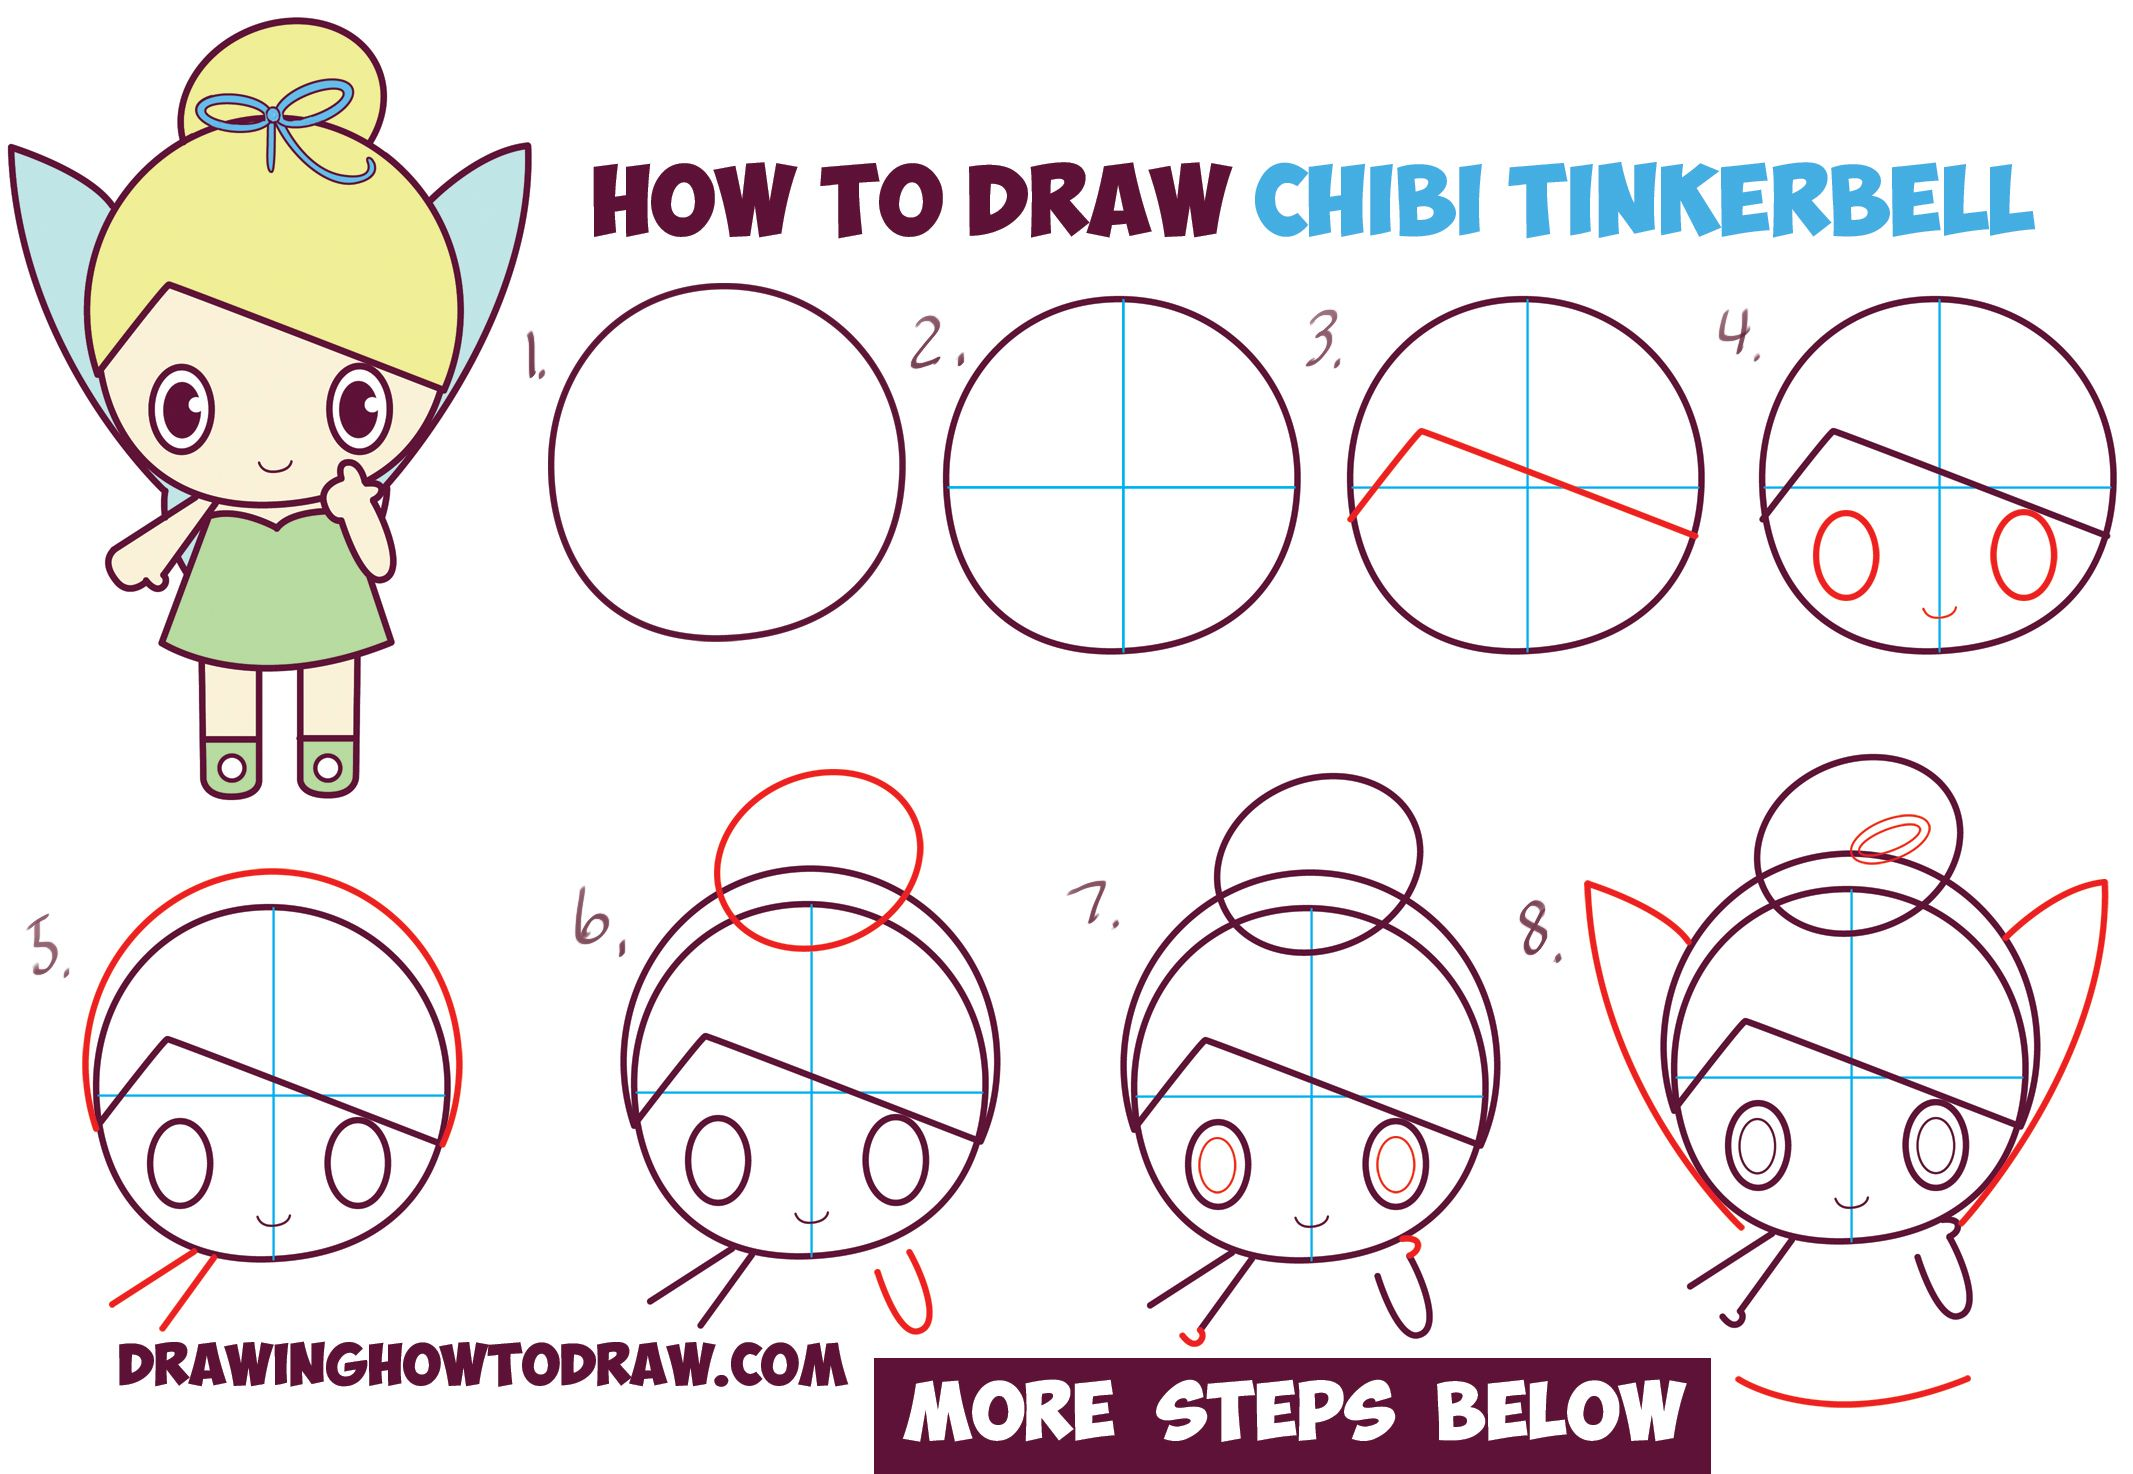 Scribble Drawing Tutorial : How to draw chibi tinkerbell the disney fairy in easy